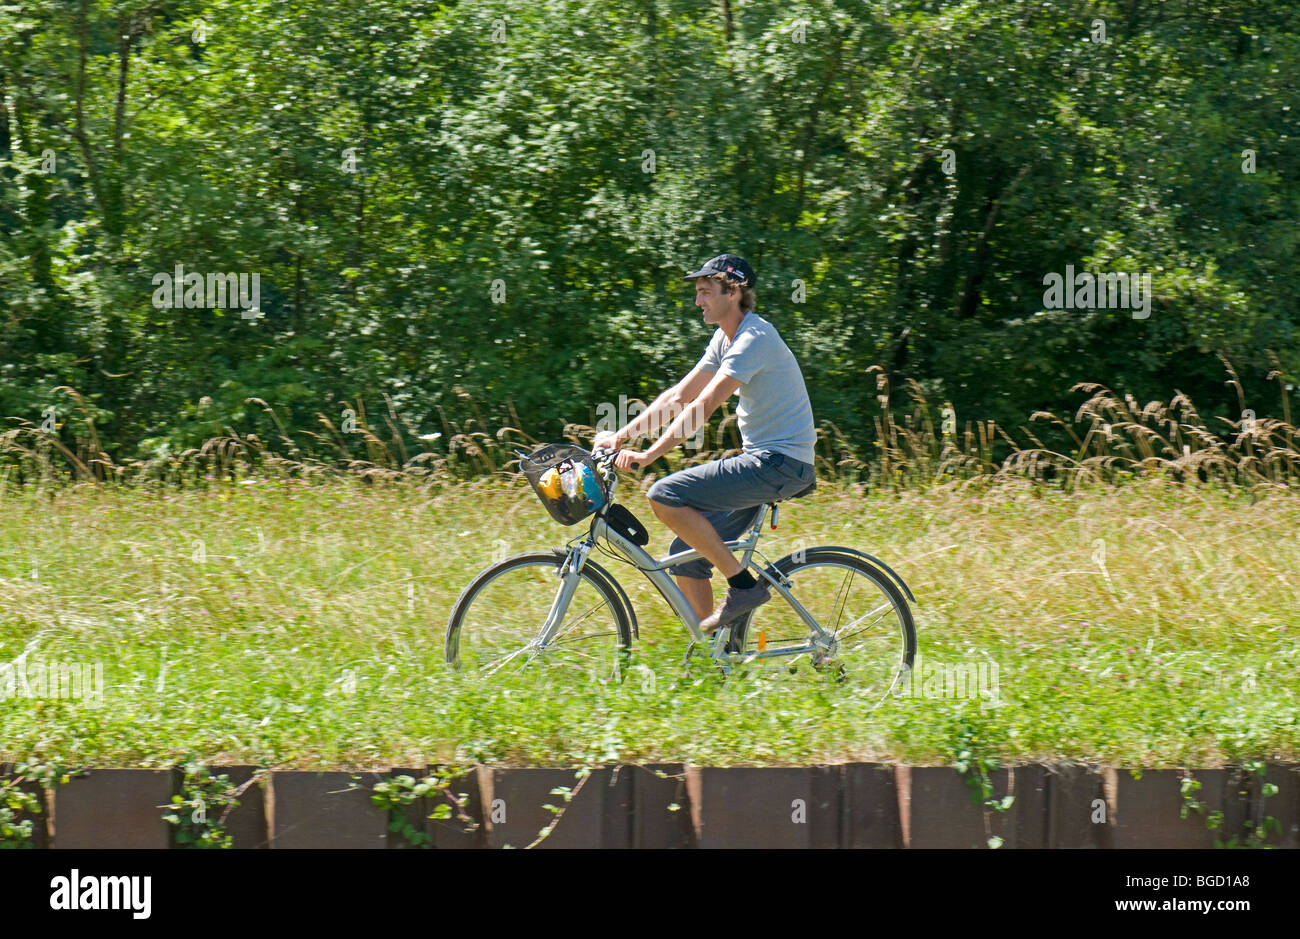 Cycling on the Canal de Bourgogne towpath at Commissery, near Tonnerre in the Yonne (89) departement of France - Stock Image